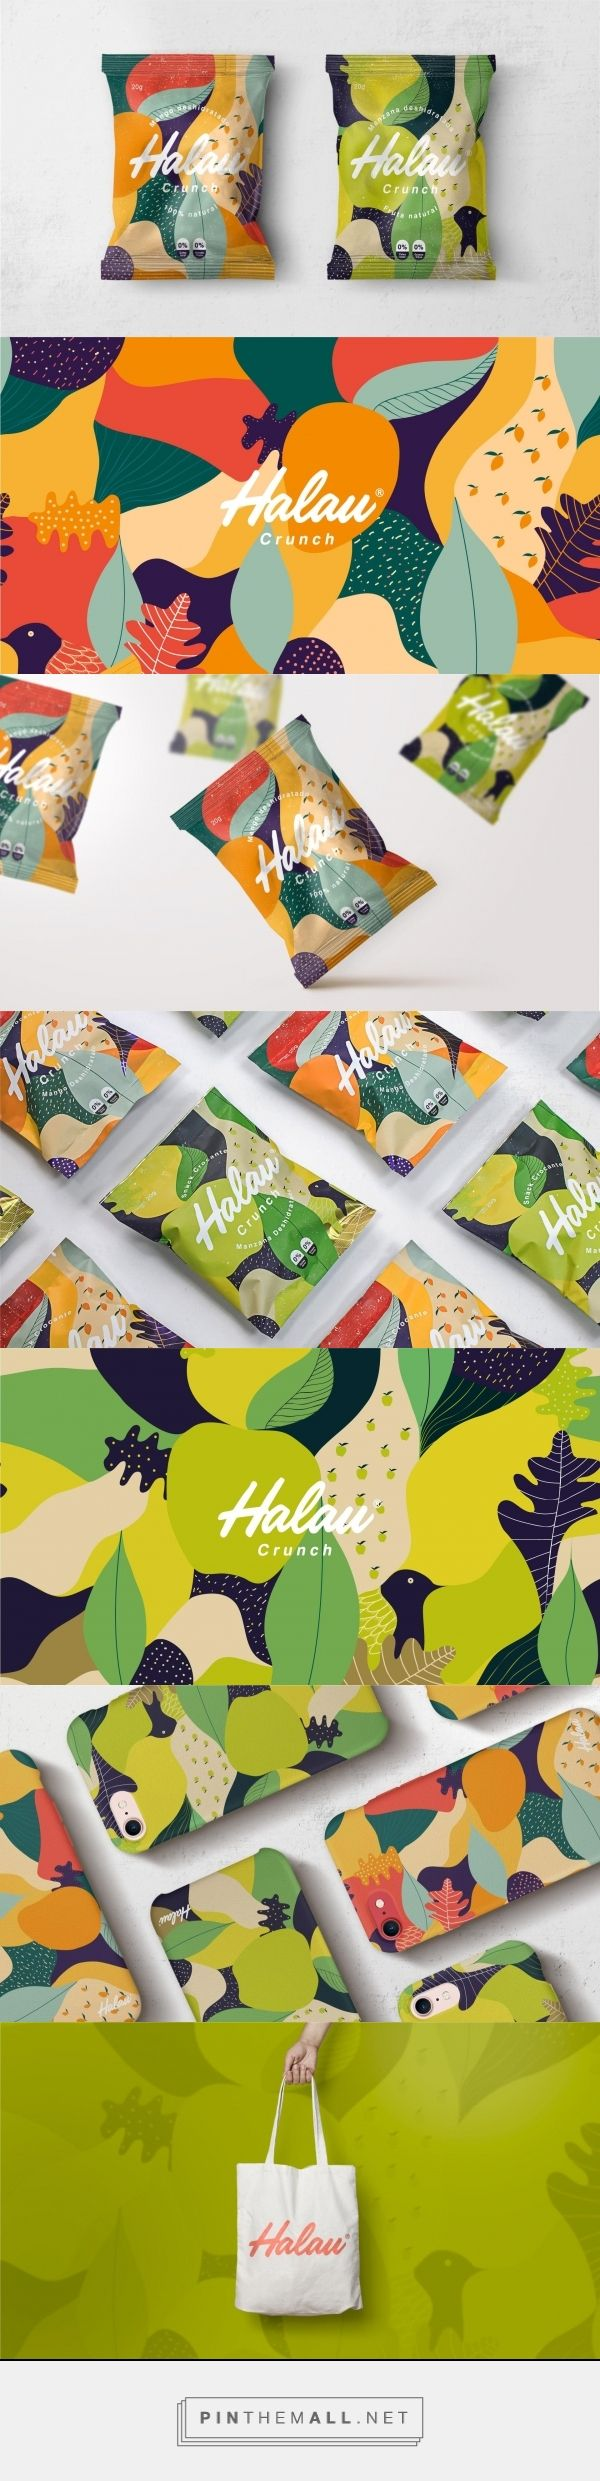 Halau Fruit Snacks Packaging by Creamos